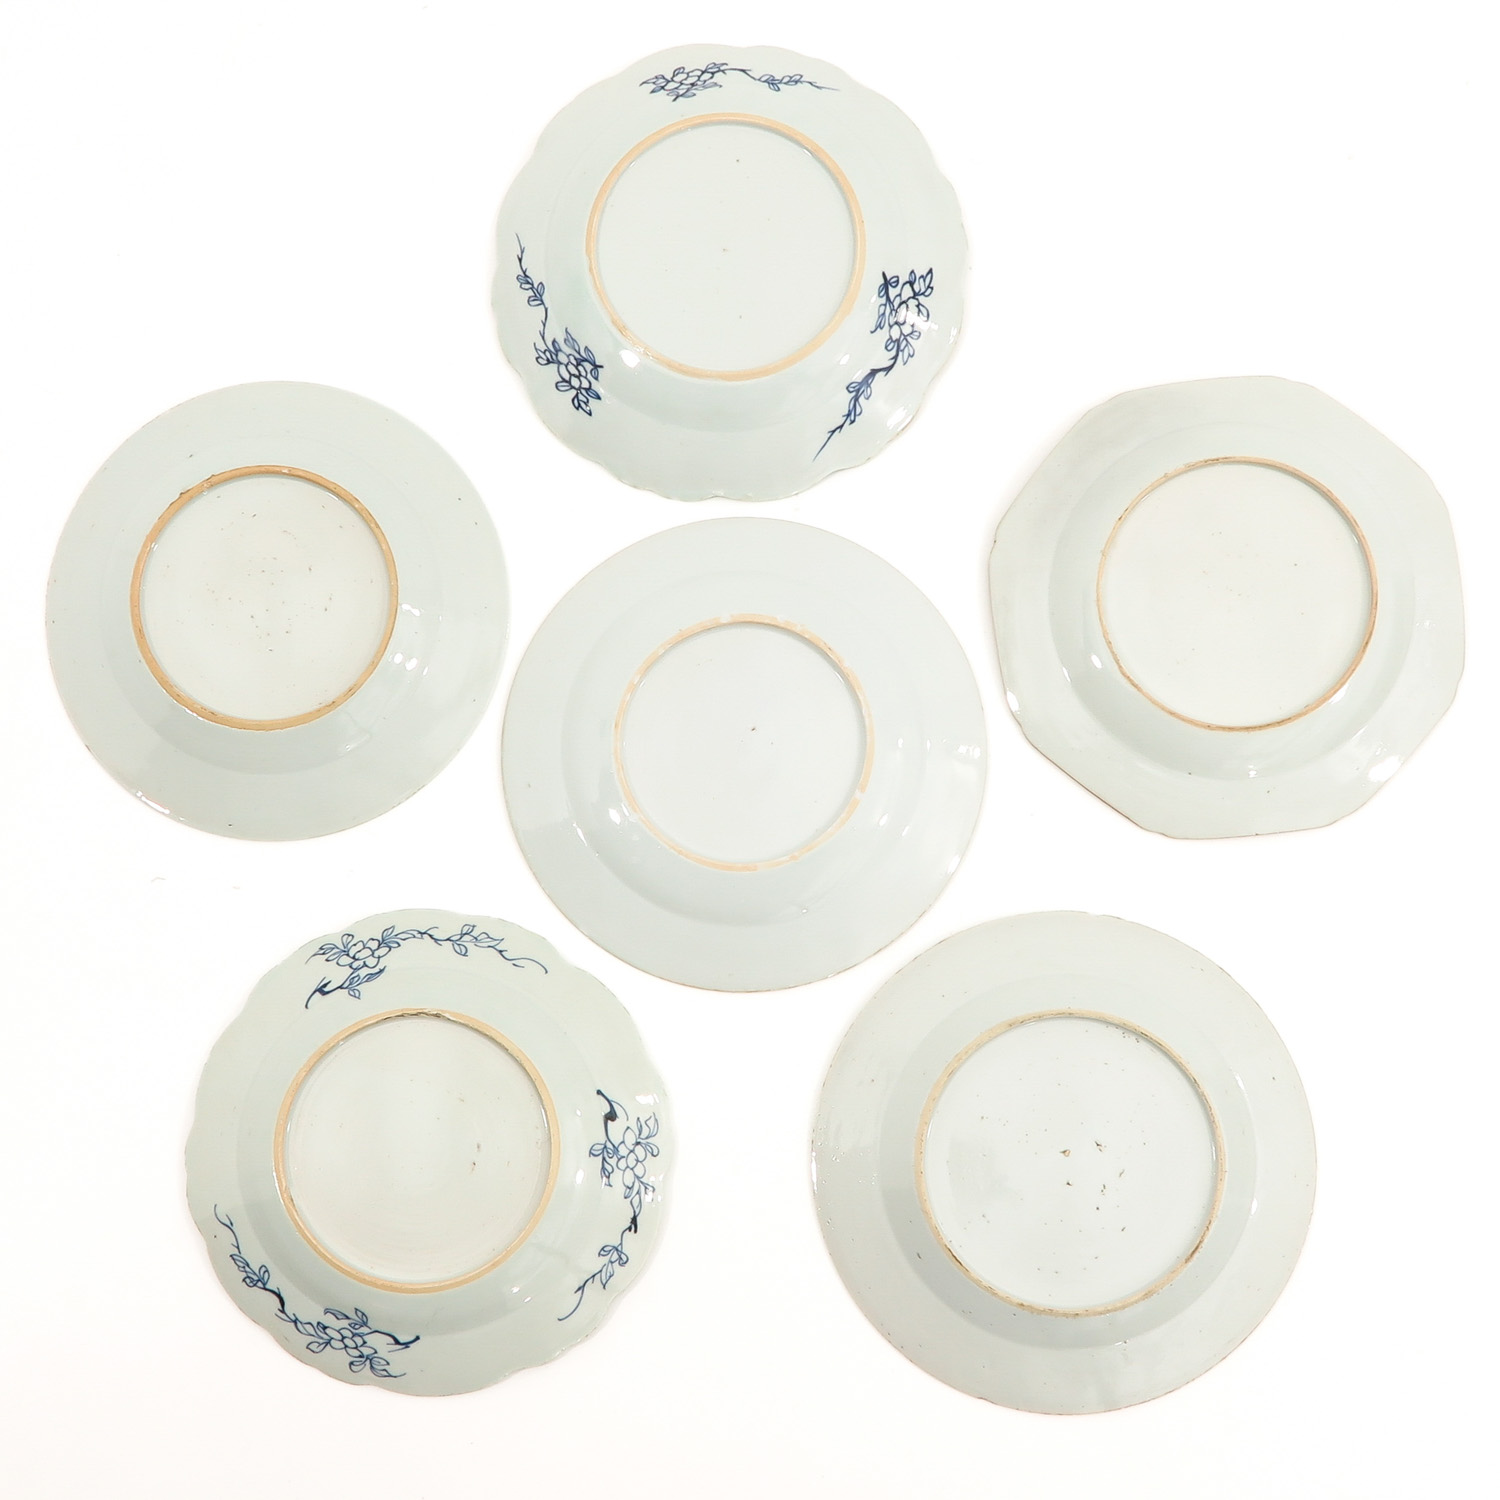 A Set of 6 Blue and White Plates - Image 2 of 10